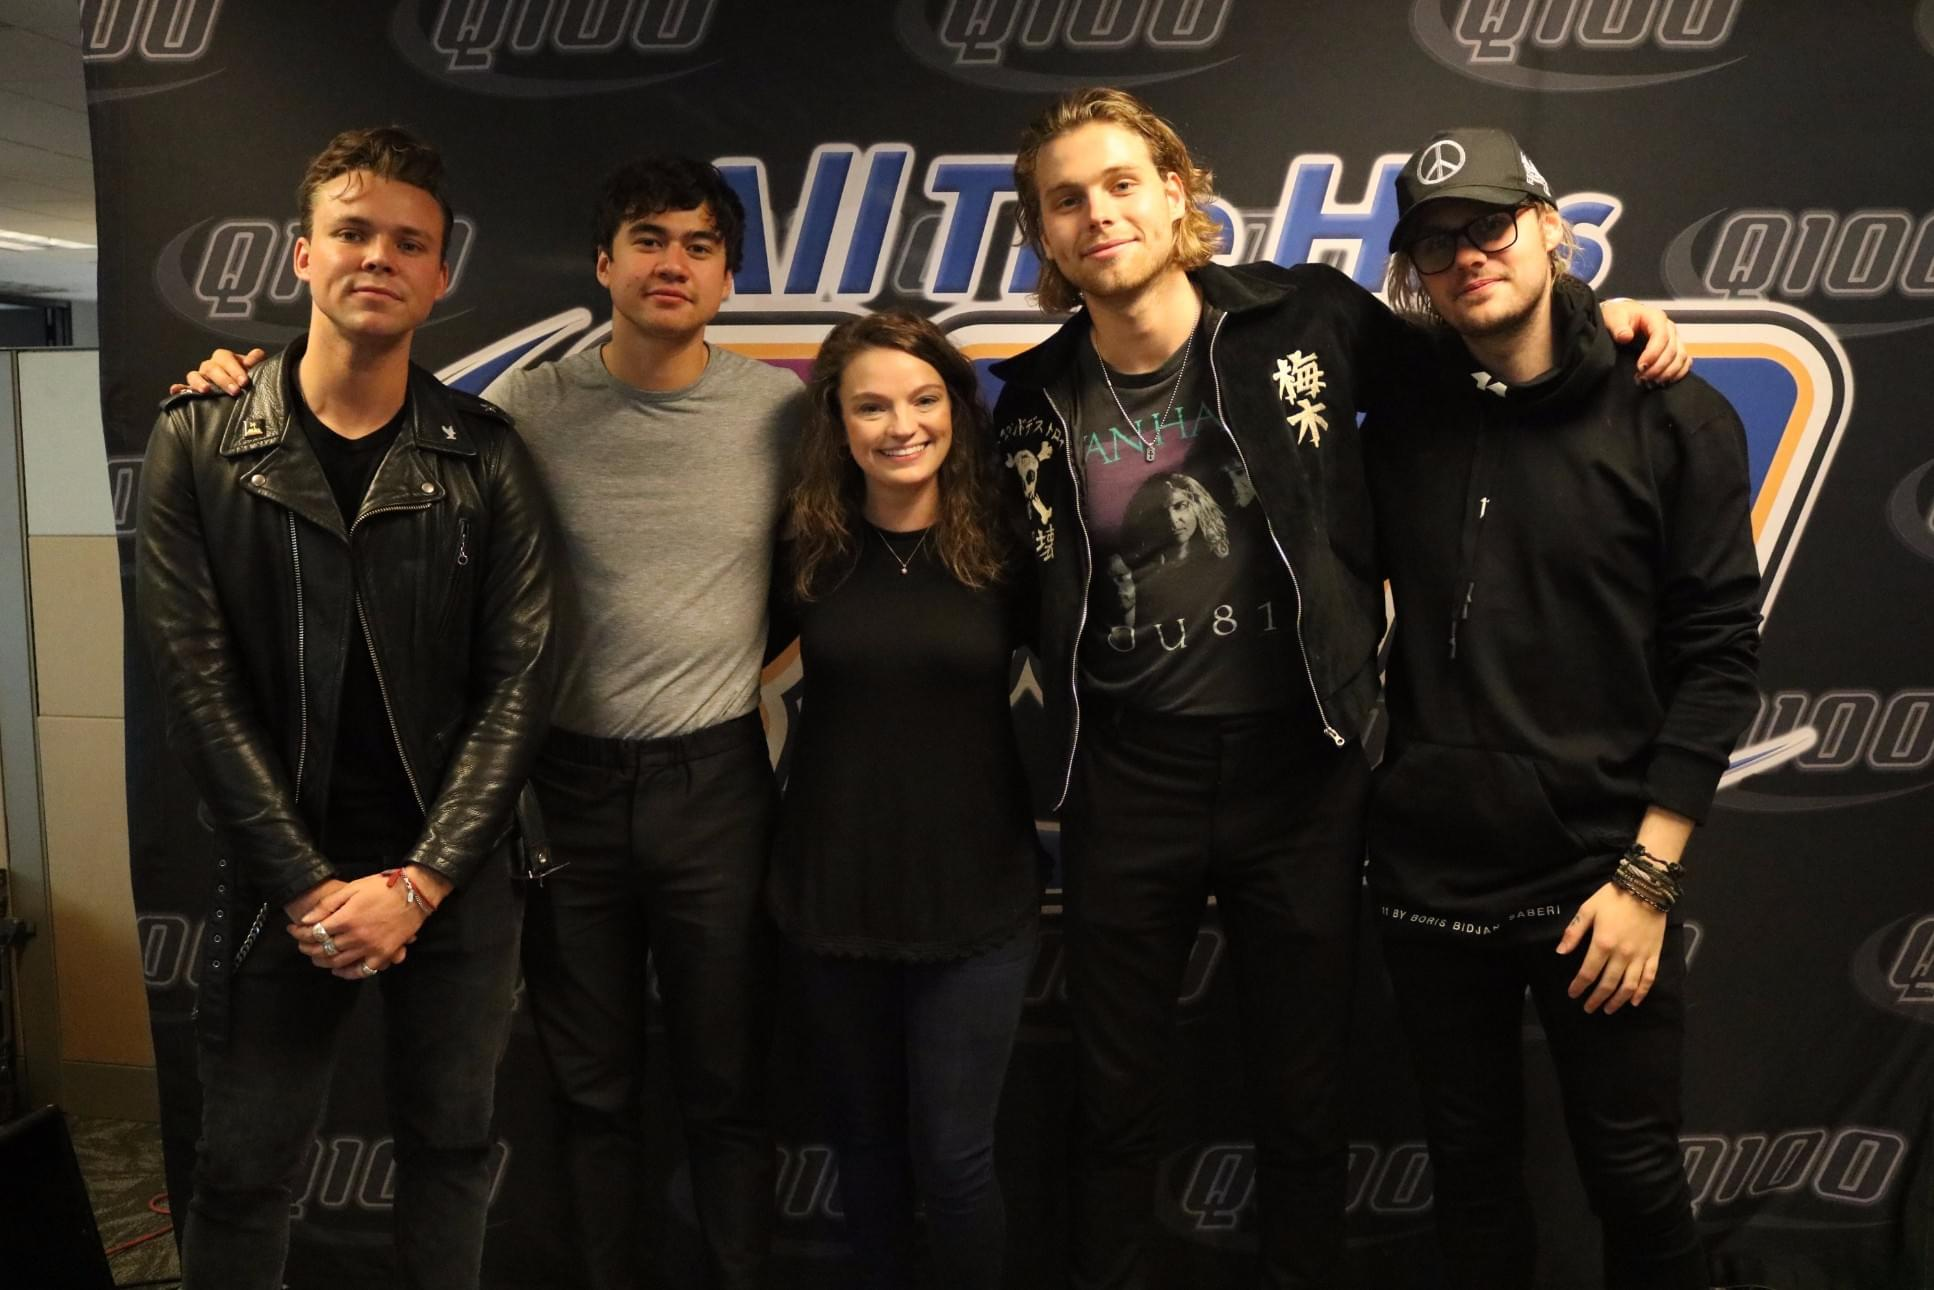 Meet and greet tickets 5 seconds of summer gallery greeting card 5 seconds of summer meet greet photos q100 wwwq fm 5 seconds of summer meet greet kristyandbryce Images